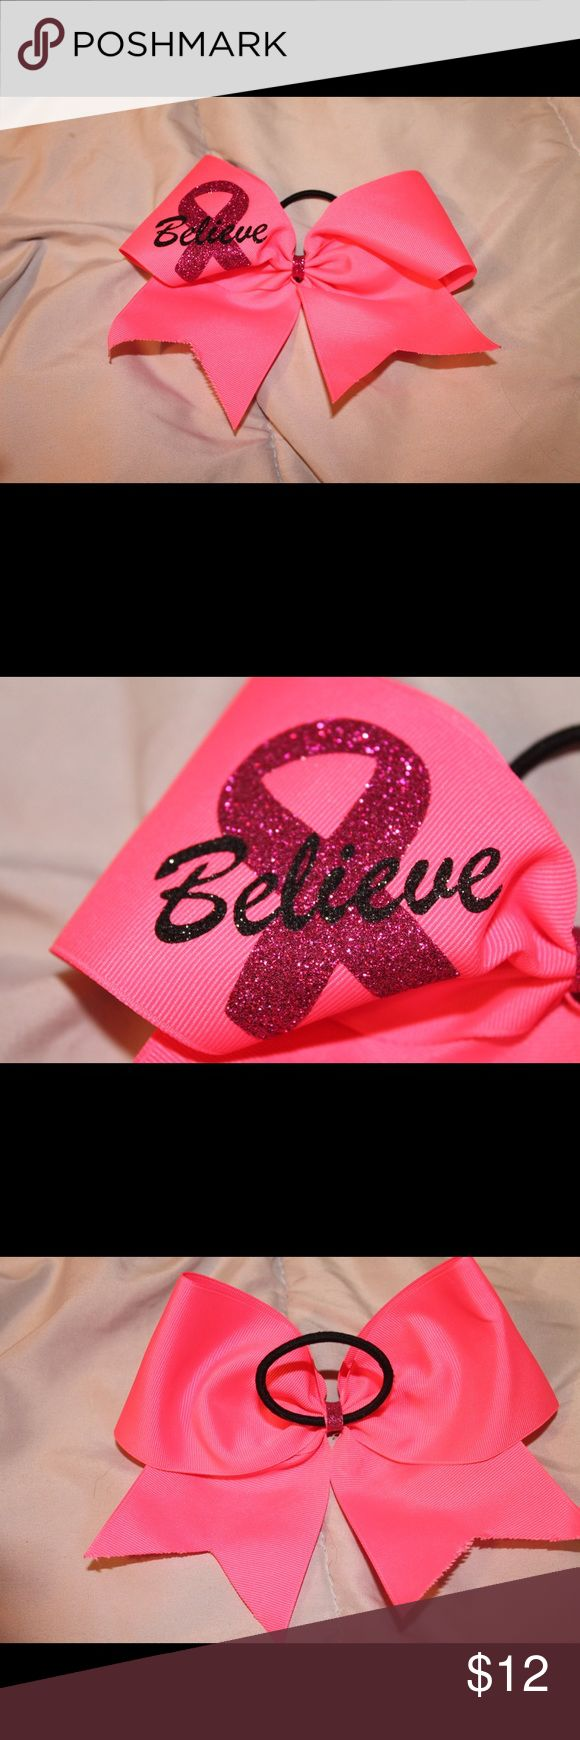 Cheer bow holder for cheer bows and hair bows cheer bow hanger - Hot Pink Cheer Bow For Breast Cancer Awareness Month Sparkly Pink Ribbon On The Left Side With The Words Believe Bow Attached To A Pony Tail